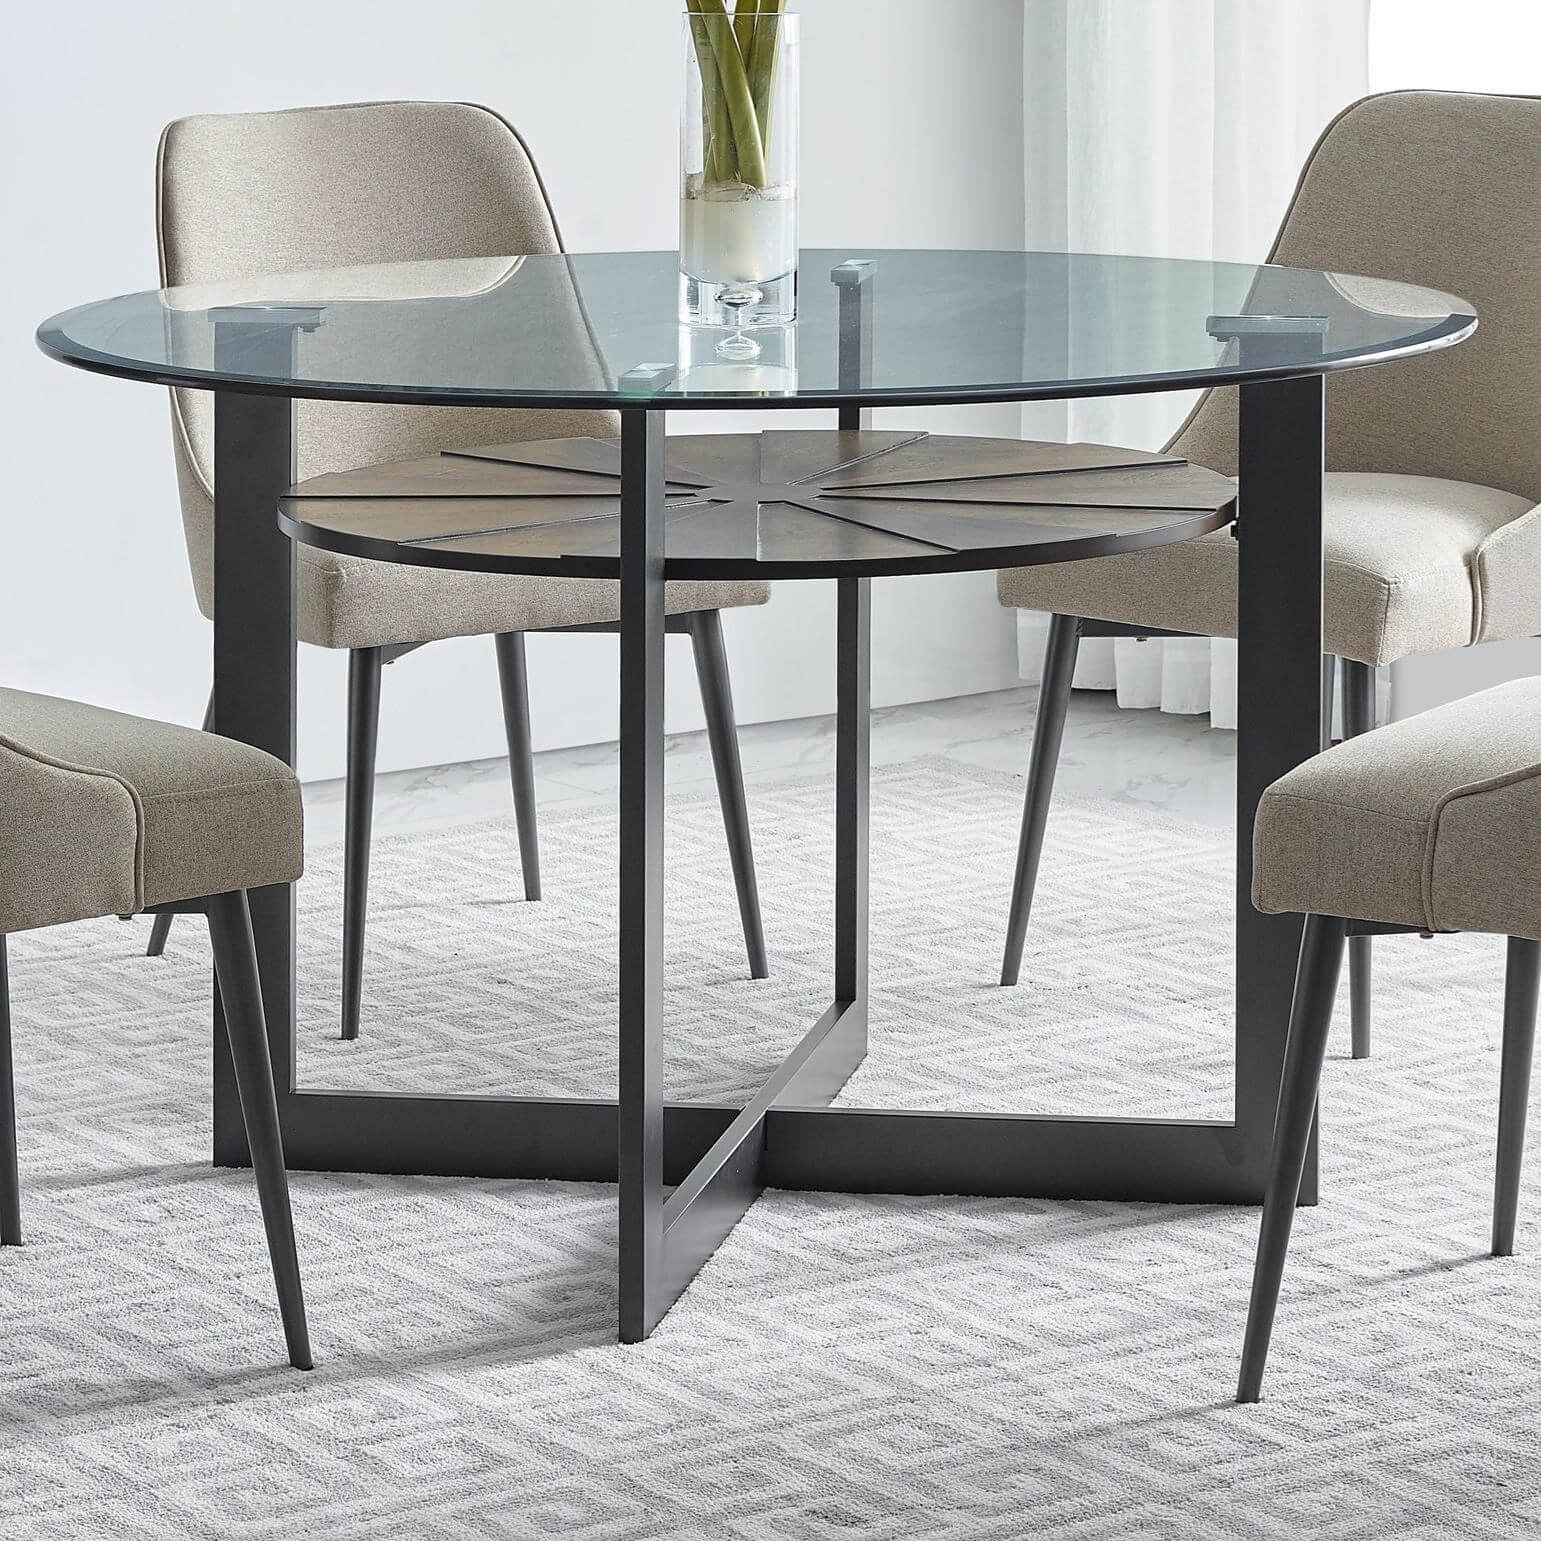 Contemporary Glass Dining Tables Ideas with Imges